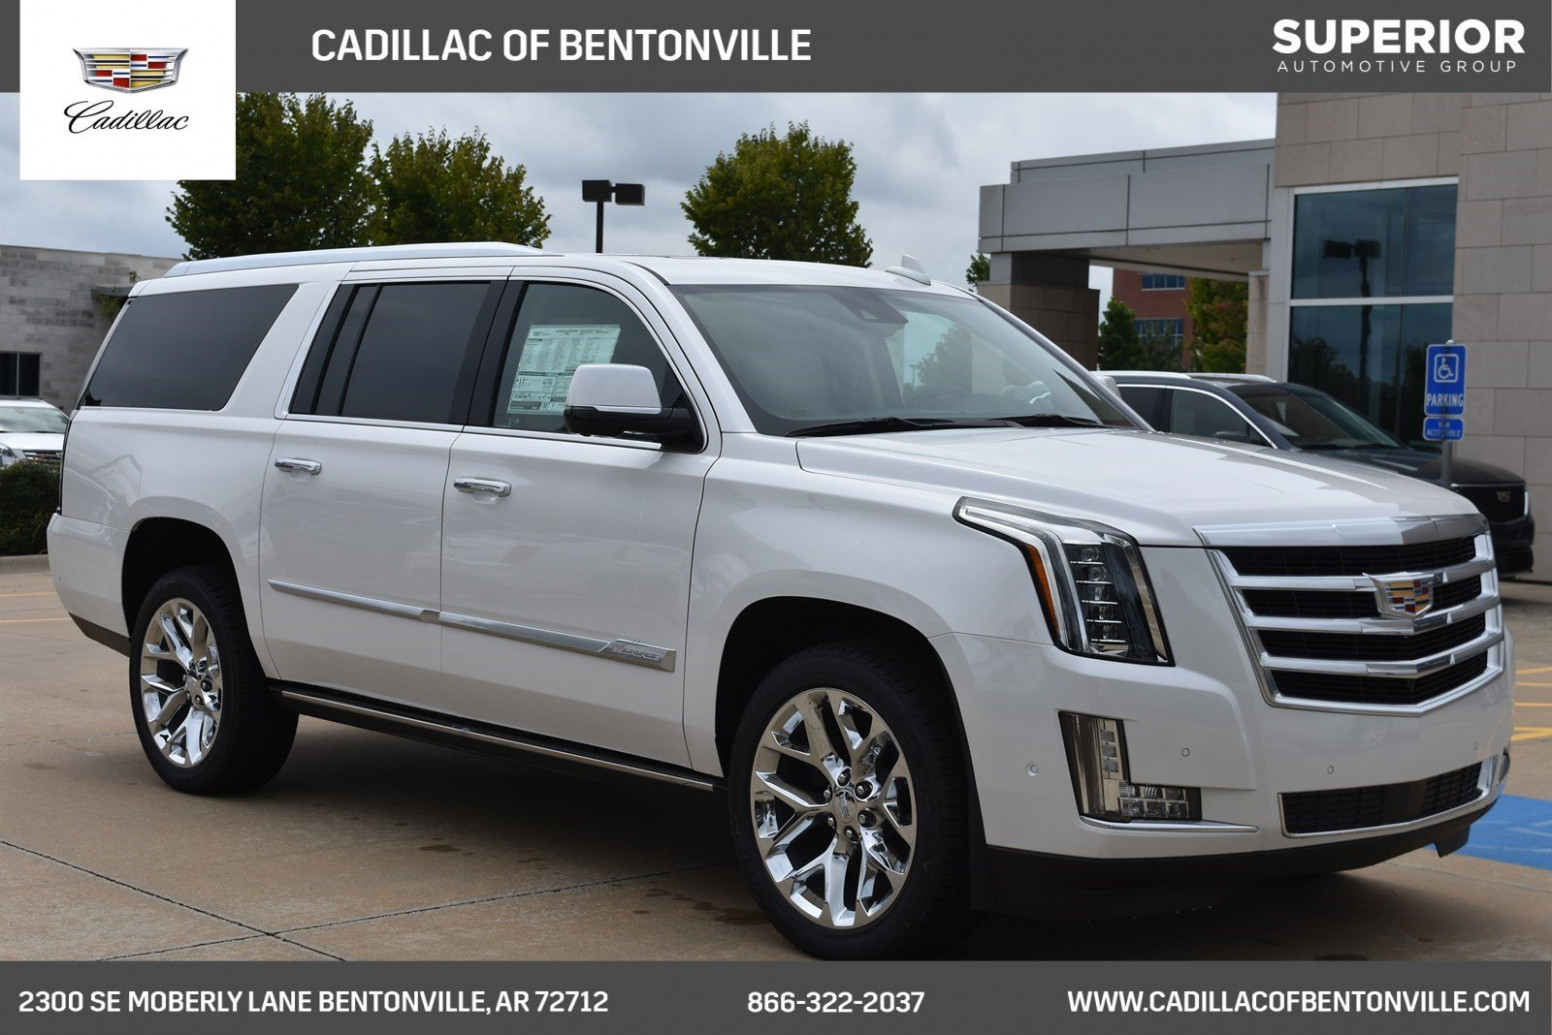 New 11 Cadillac Escalade ESV Premium Luxury With Navigation & 11WD